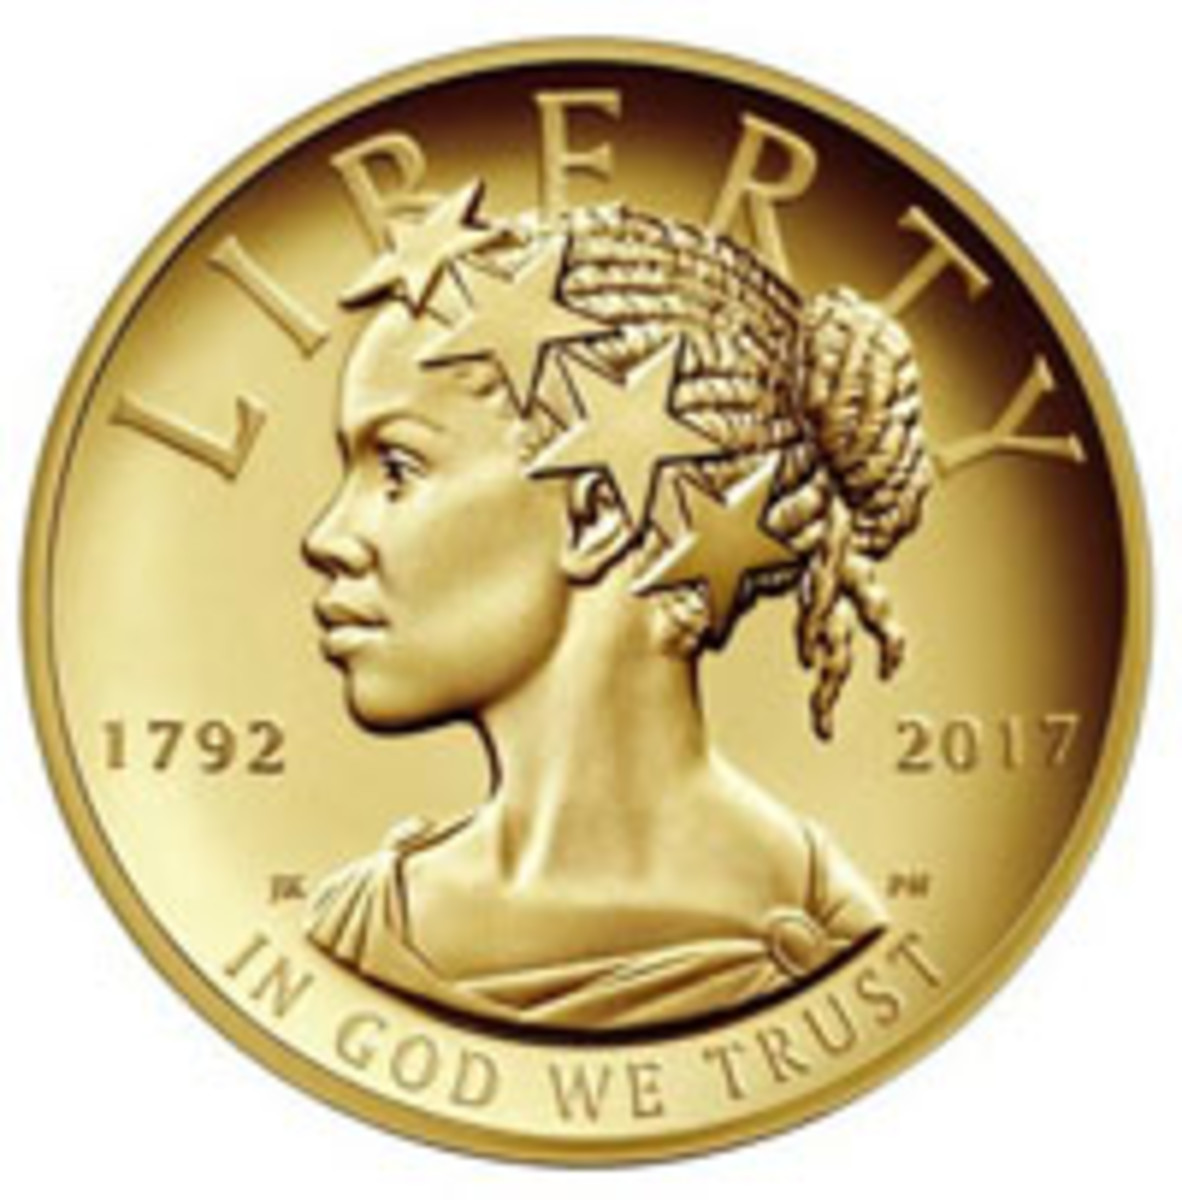 2017 American Liberty gold $100 coin